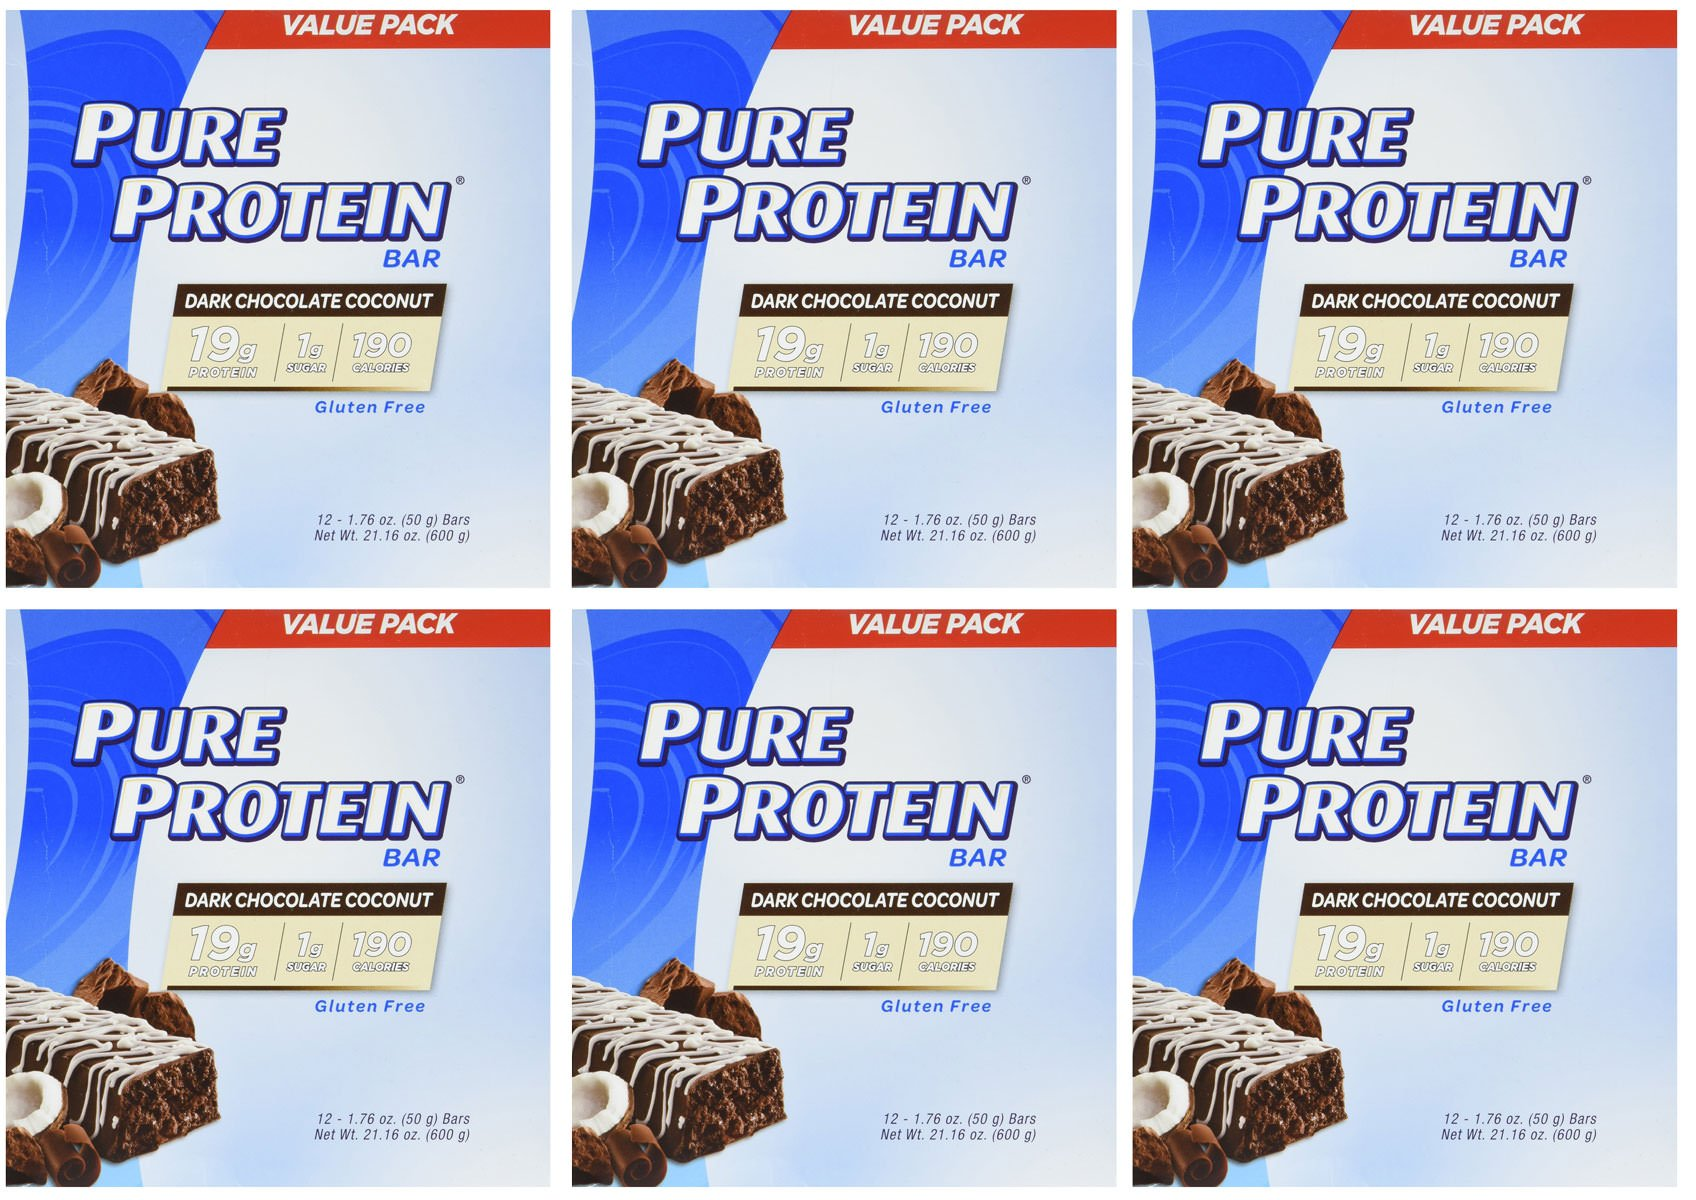 Pure Protein Dark Chocolate Coconut, 1.76oz, 6 Pack (12 Count)